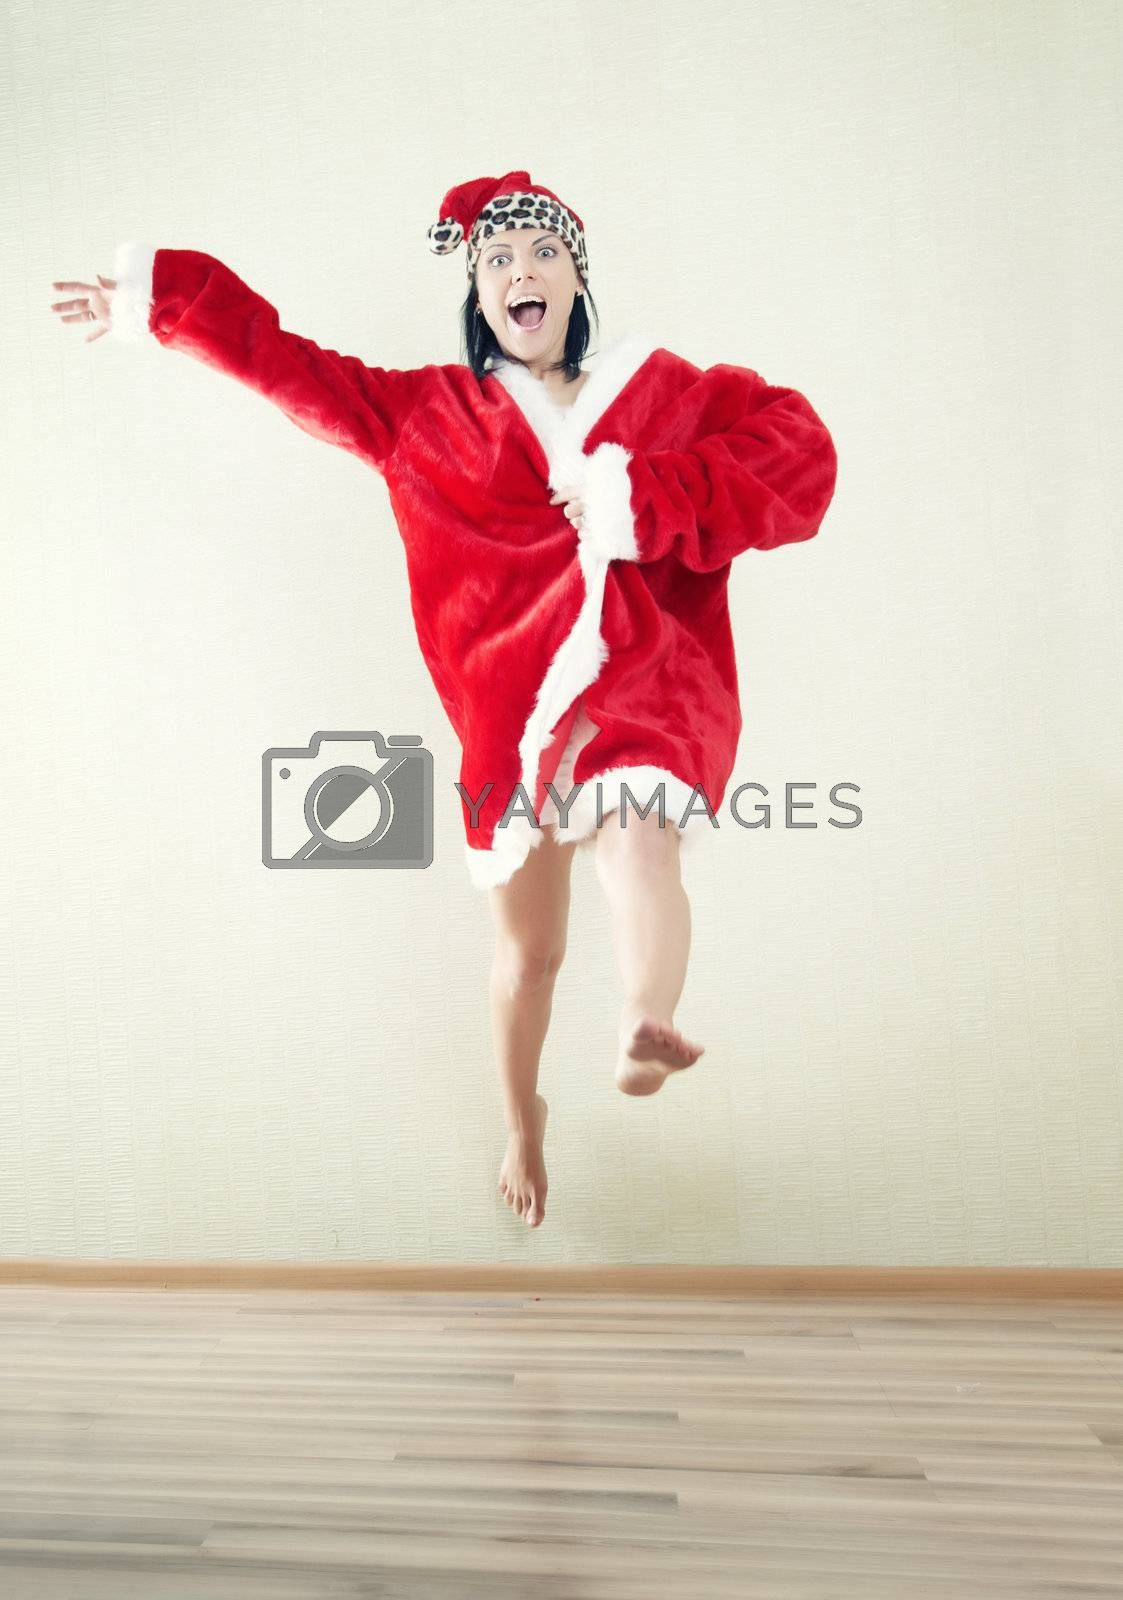 Jumping lady in the red Santa Claus costume indoors. Natural light and colors